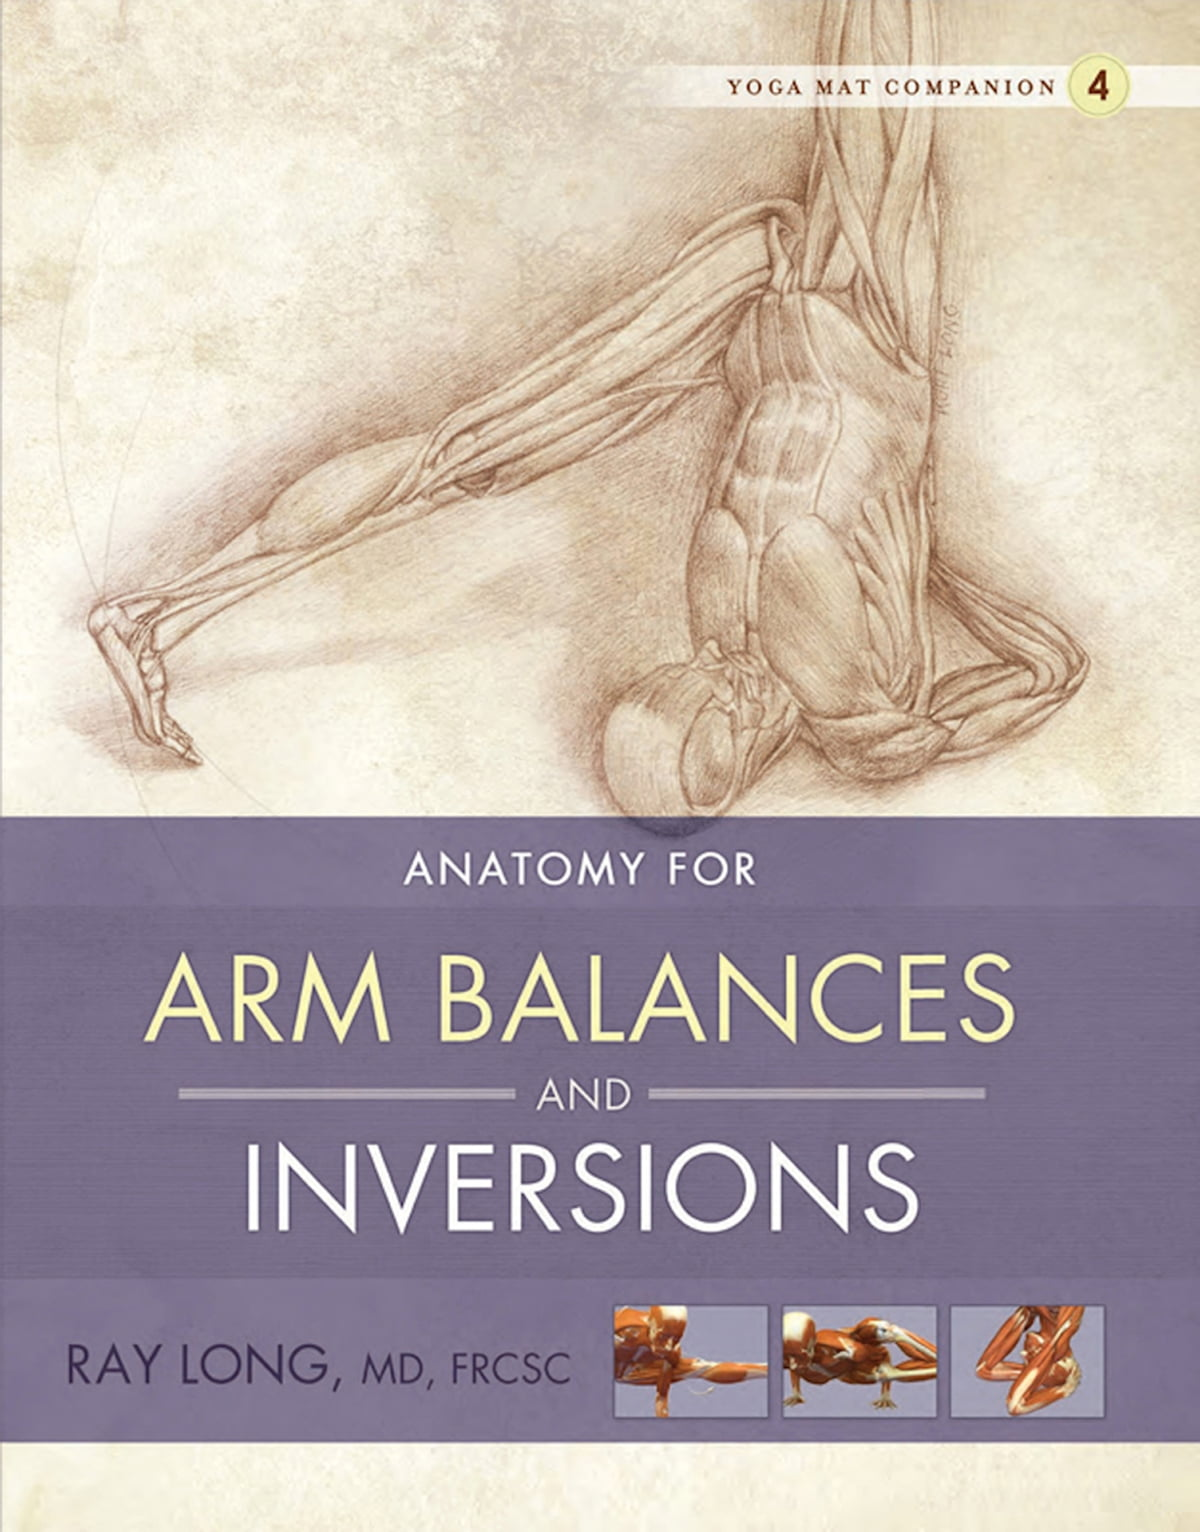 Anatomy for Arm Balances and Inversions eBook by Ray Long, MD, FRCSC ...